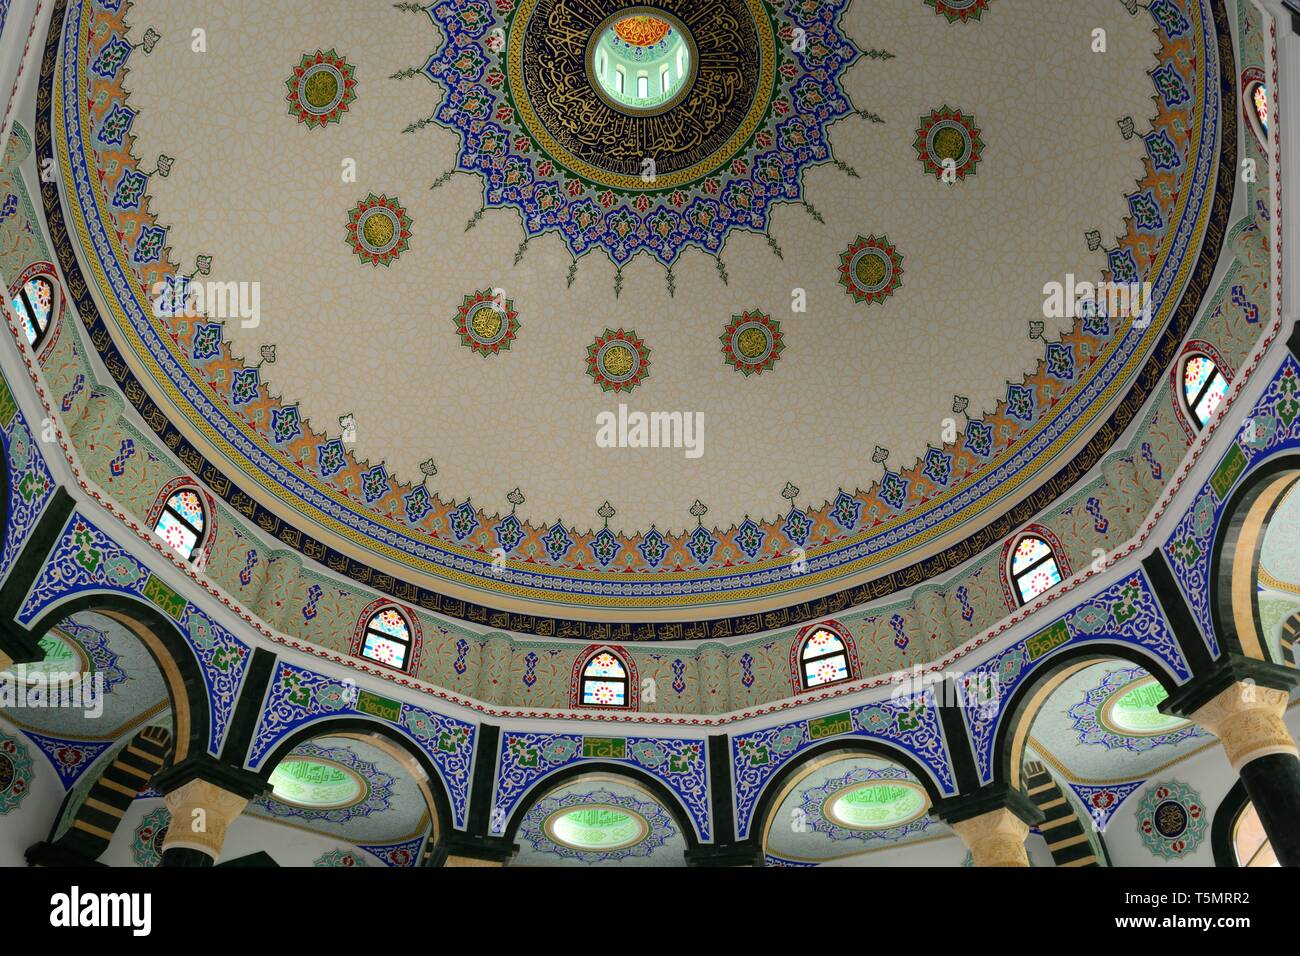 Ornately decorated ceiling of Bektashi Mosque Bektashi order Headquarters  Bektashi World Centre Tirana Albania - Stock Image